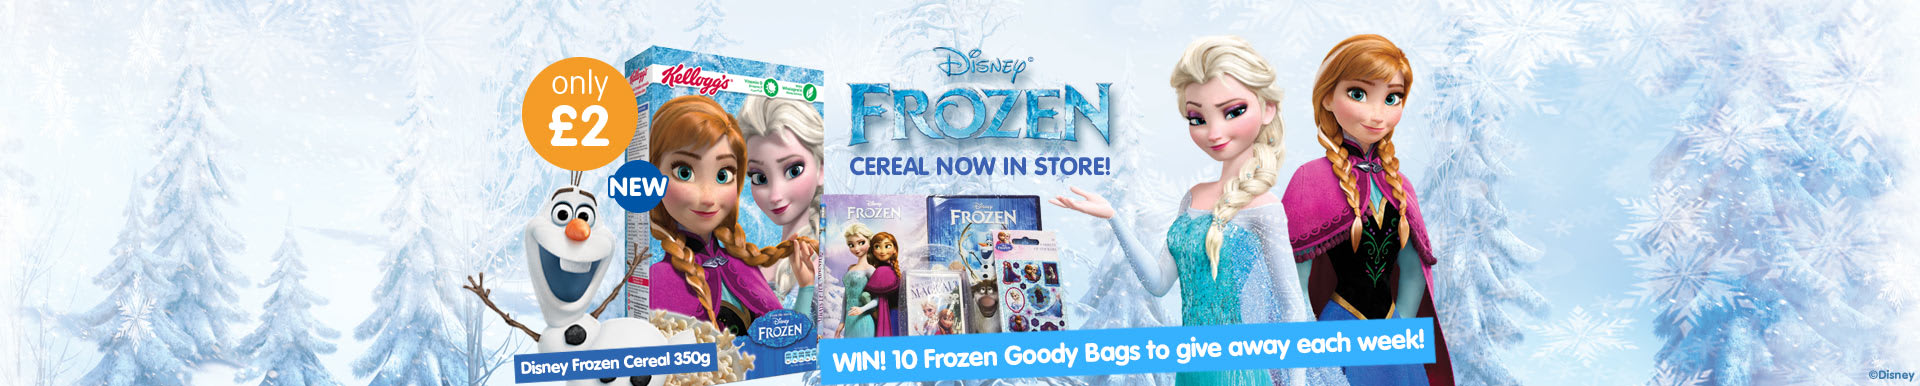 Win! 10 Frozen Goody Bags to give away each week at B&M!